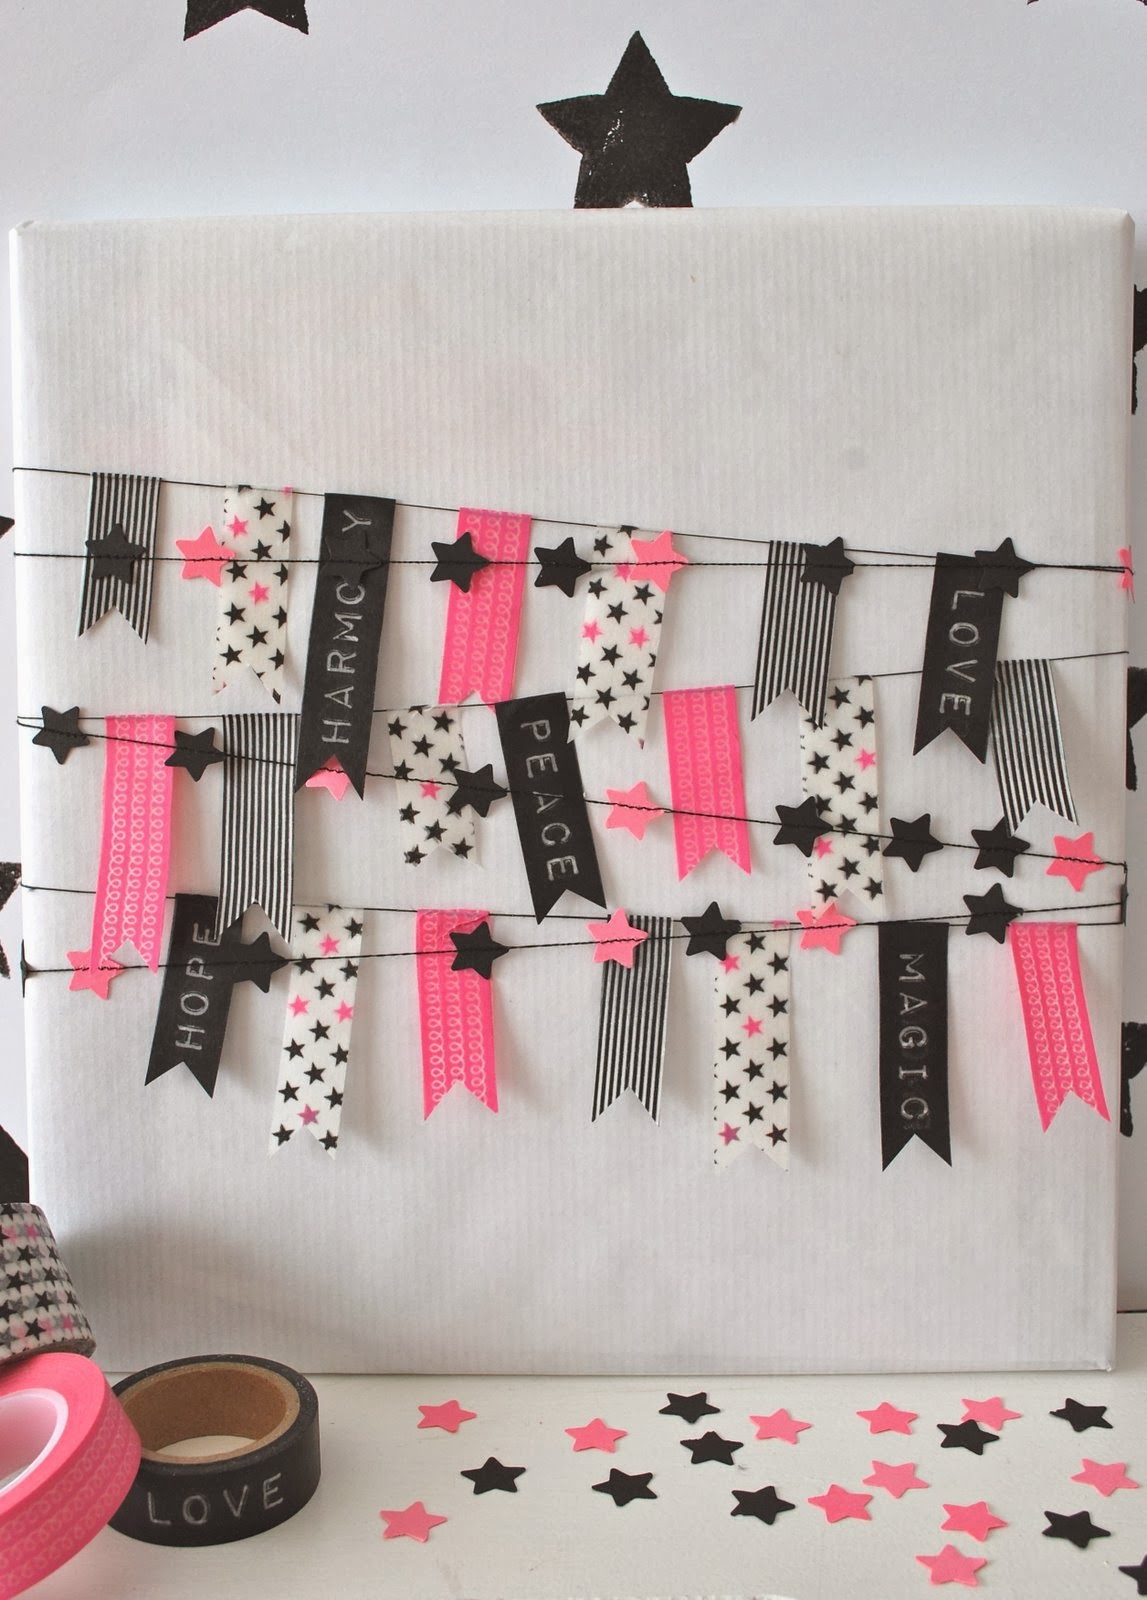 Ideas Para Decorar Con Washi Tape Decorar Regalos Con Washi Tape Artcreatiu